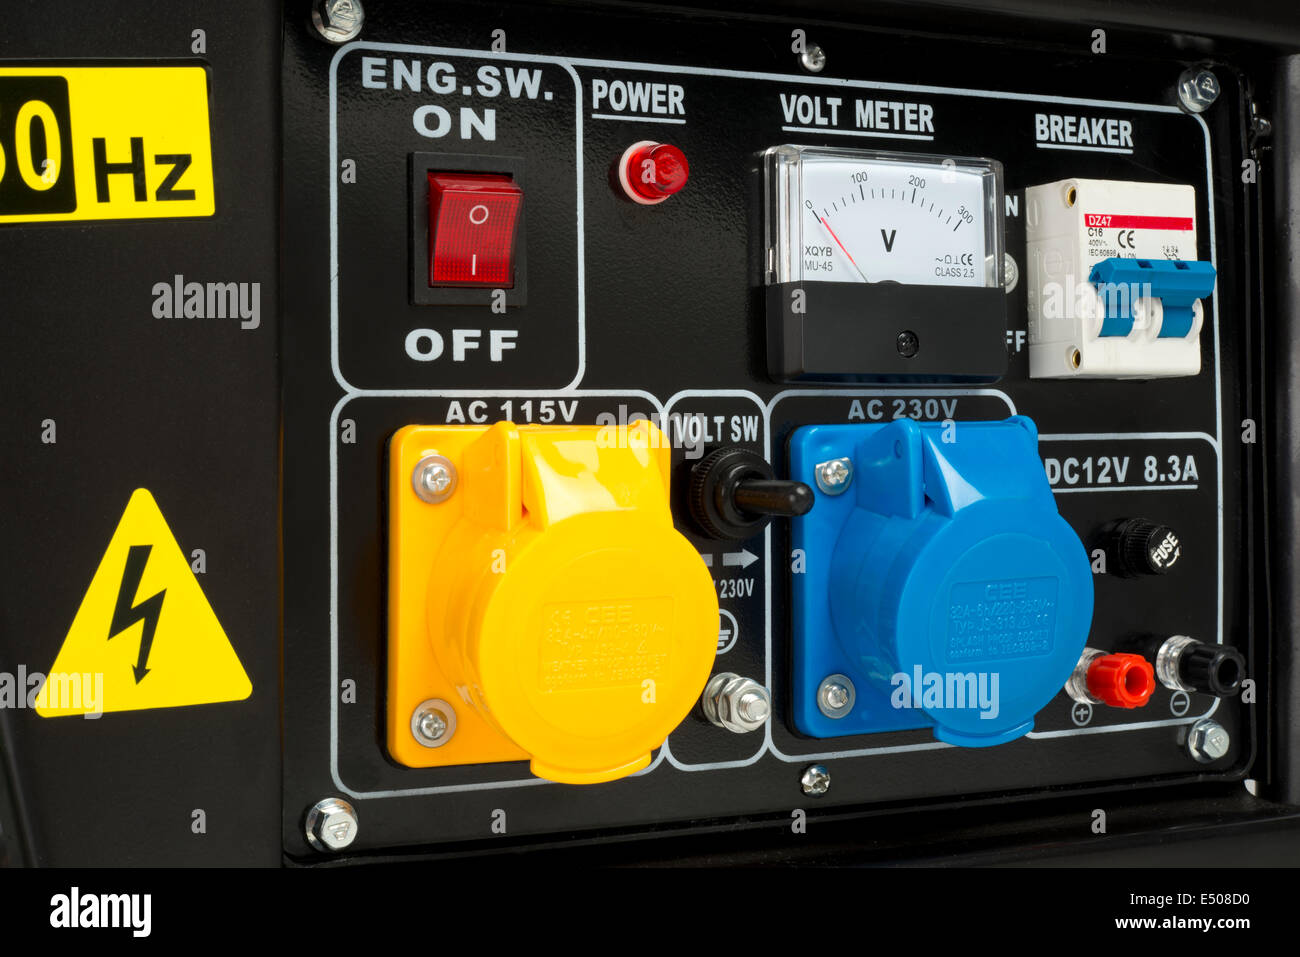 Electricity generator control panel;  with sockets, Volt meter, switches and circuit breakers. Stock Photo